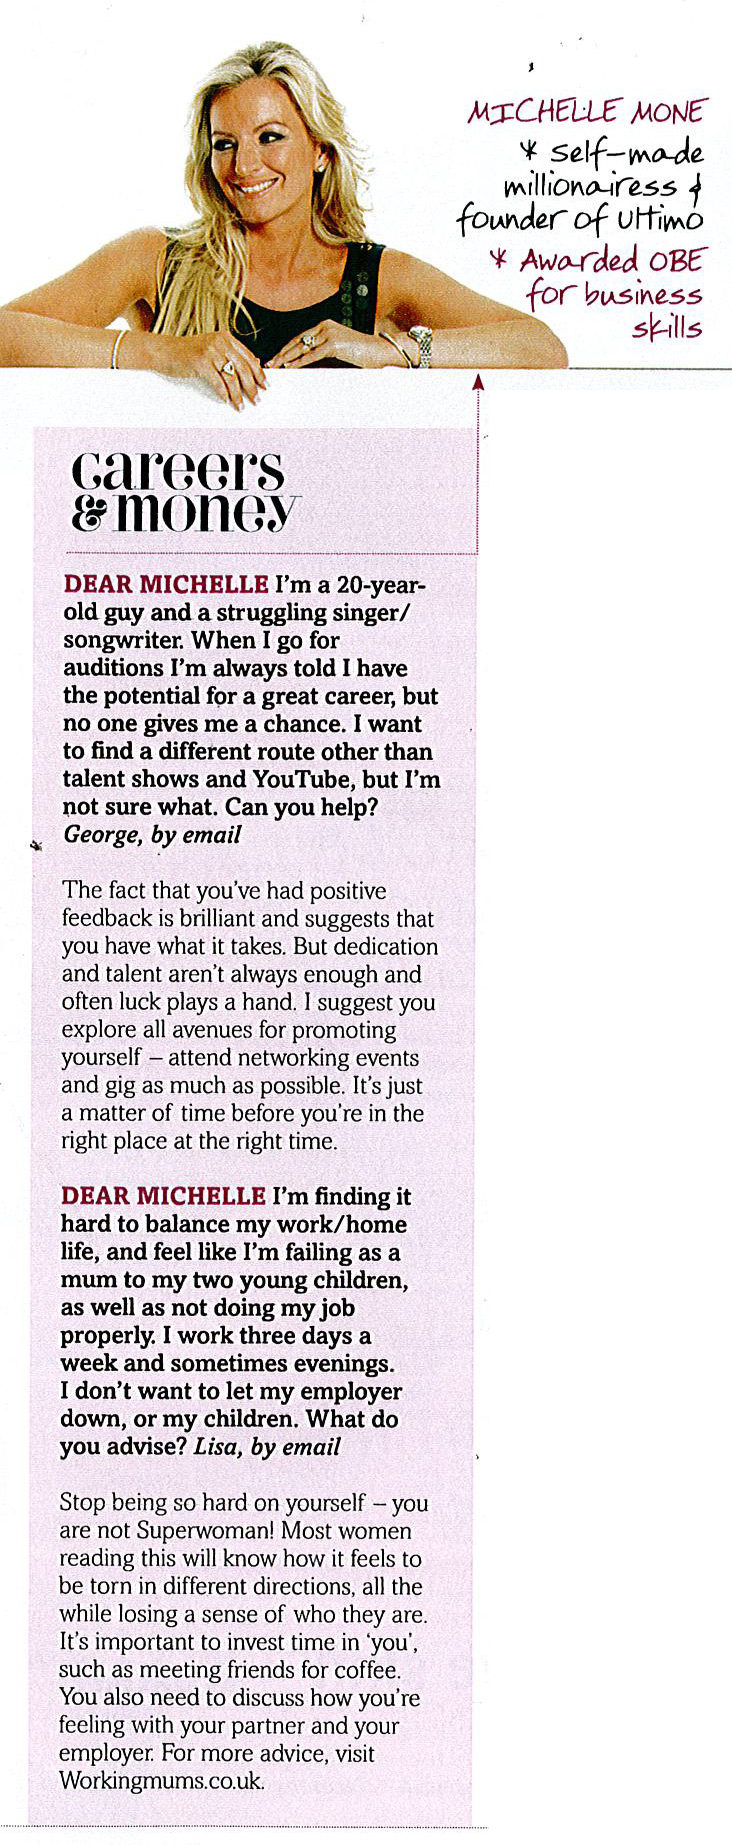 Fabulous-Magazine_Michelle-Advice-ColumnSun15thMay